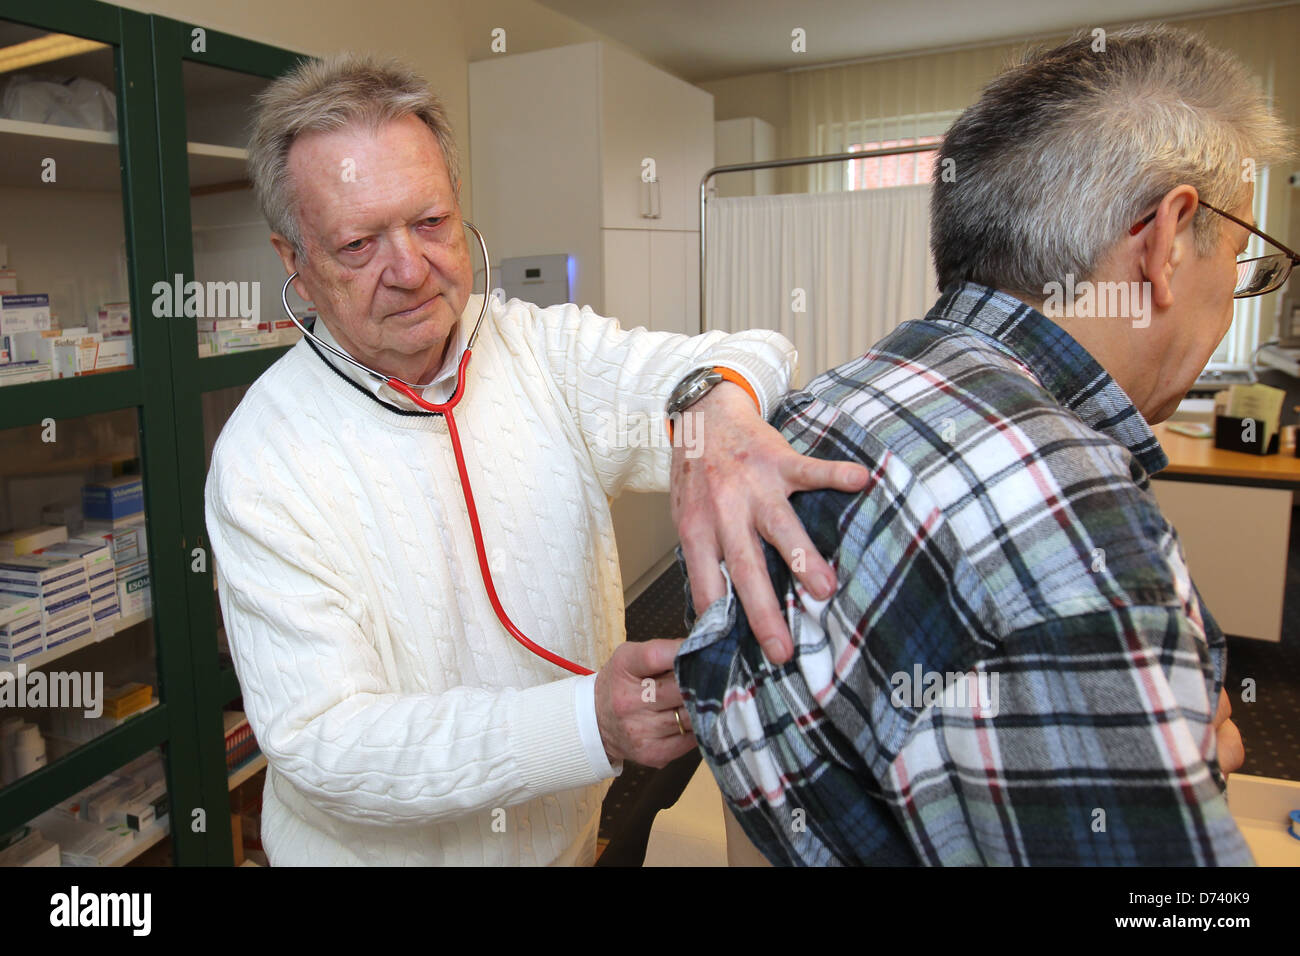 Bad Segeberg, Germany, Uwe thinker examines a patient in his practice without limits Stock Photo